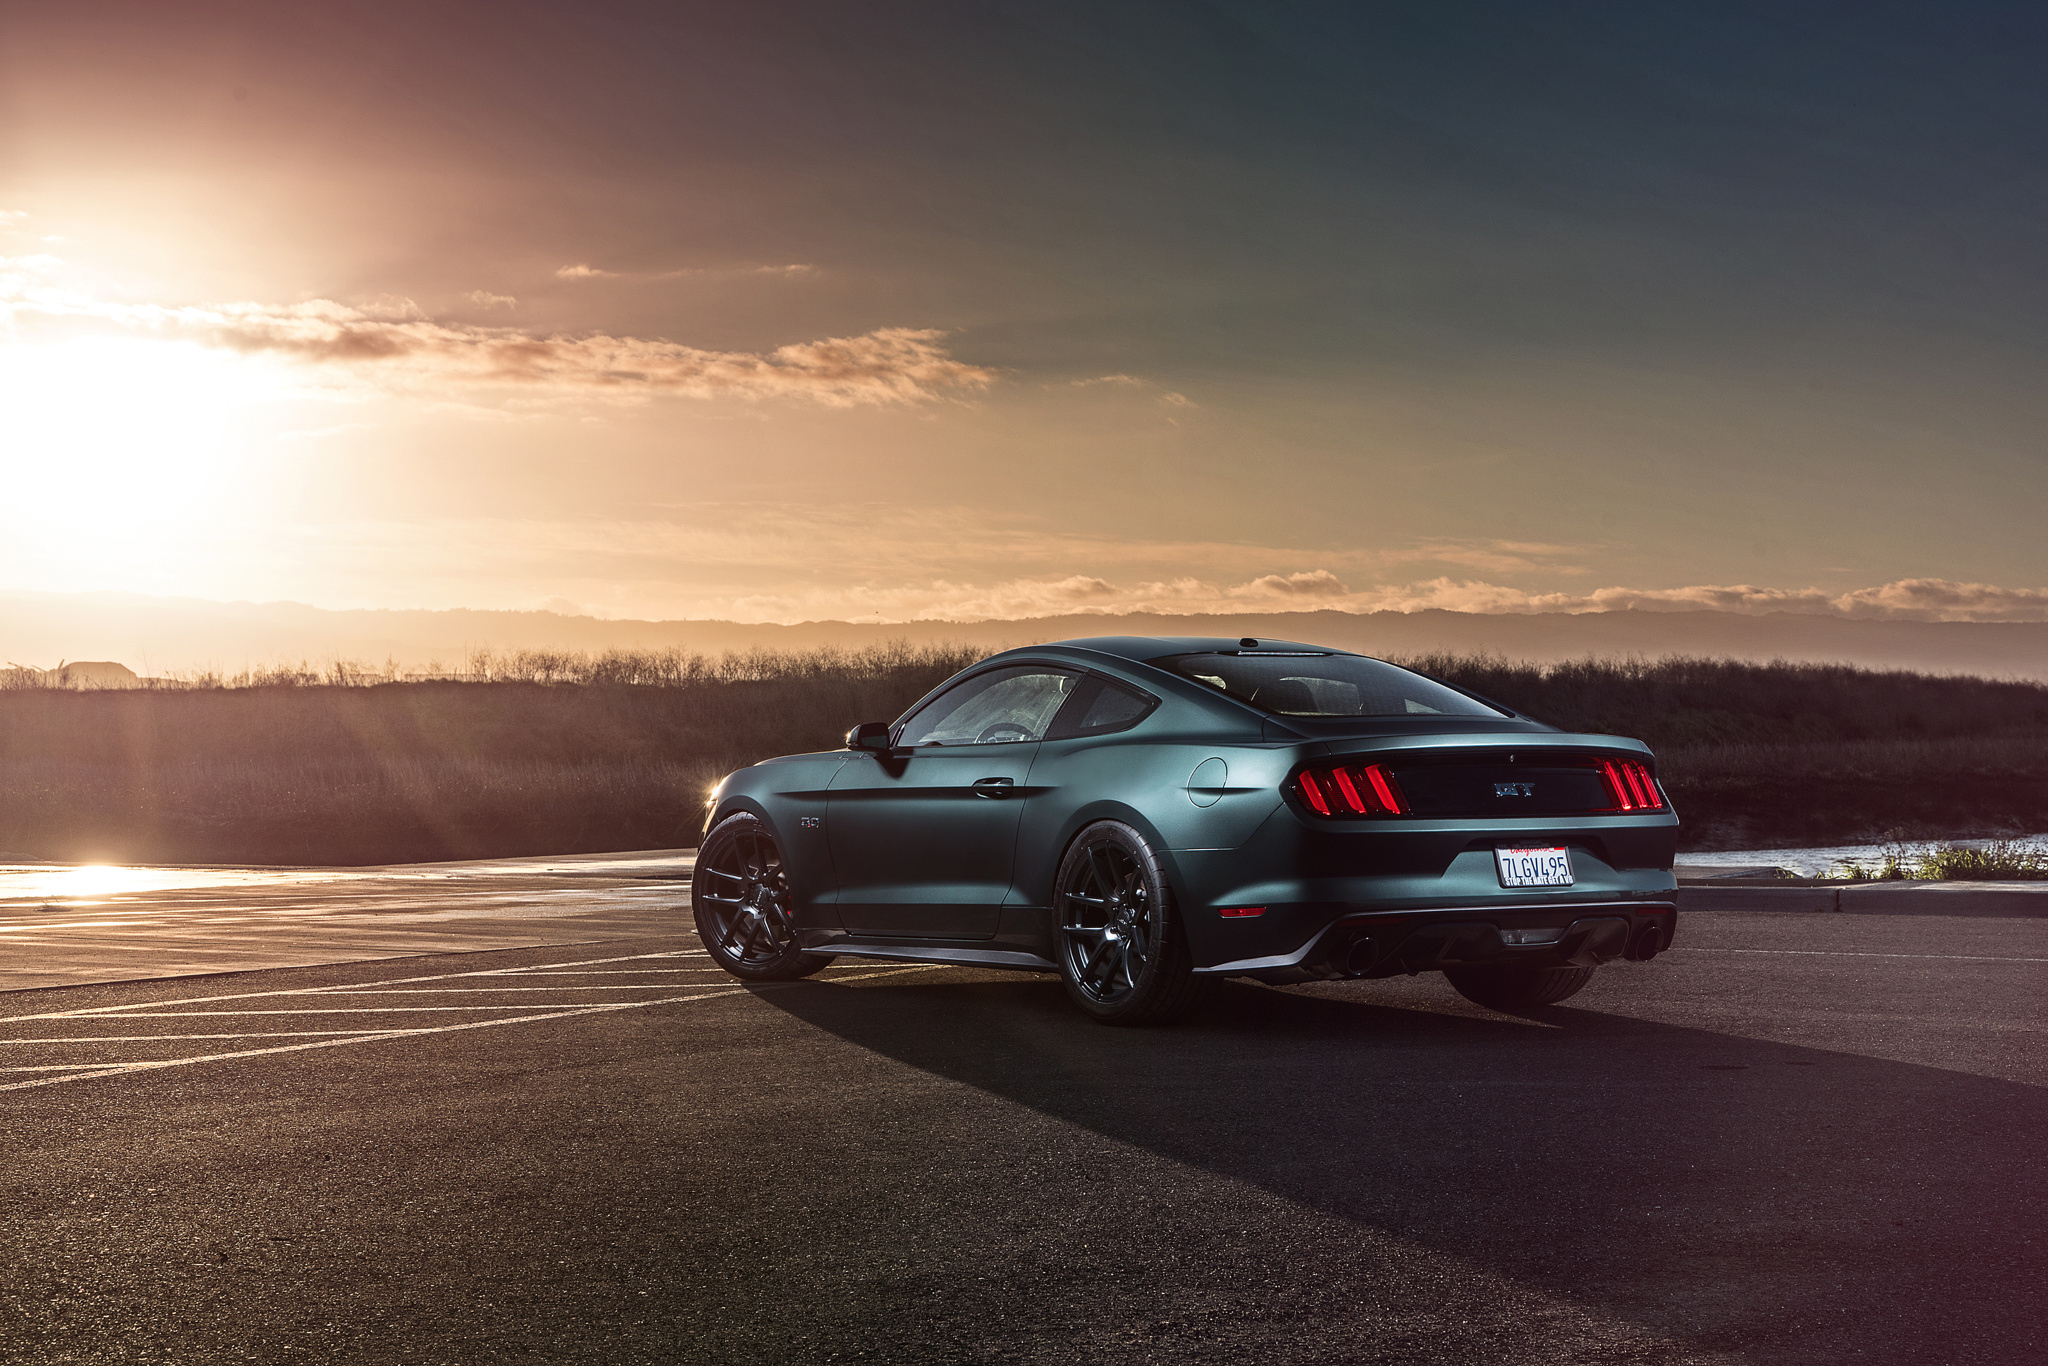 Ford Mustang Gt Hd Wallpaper Background Image 2048x1366 Id